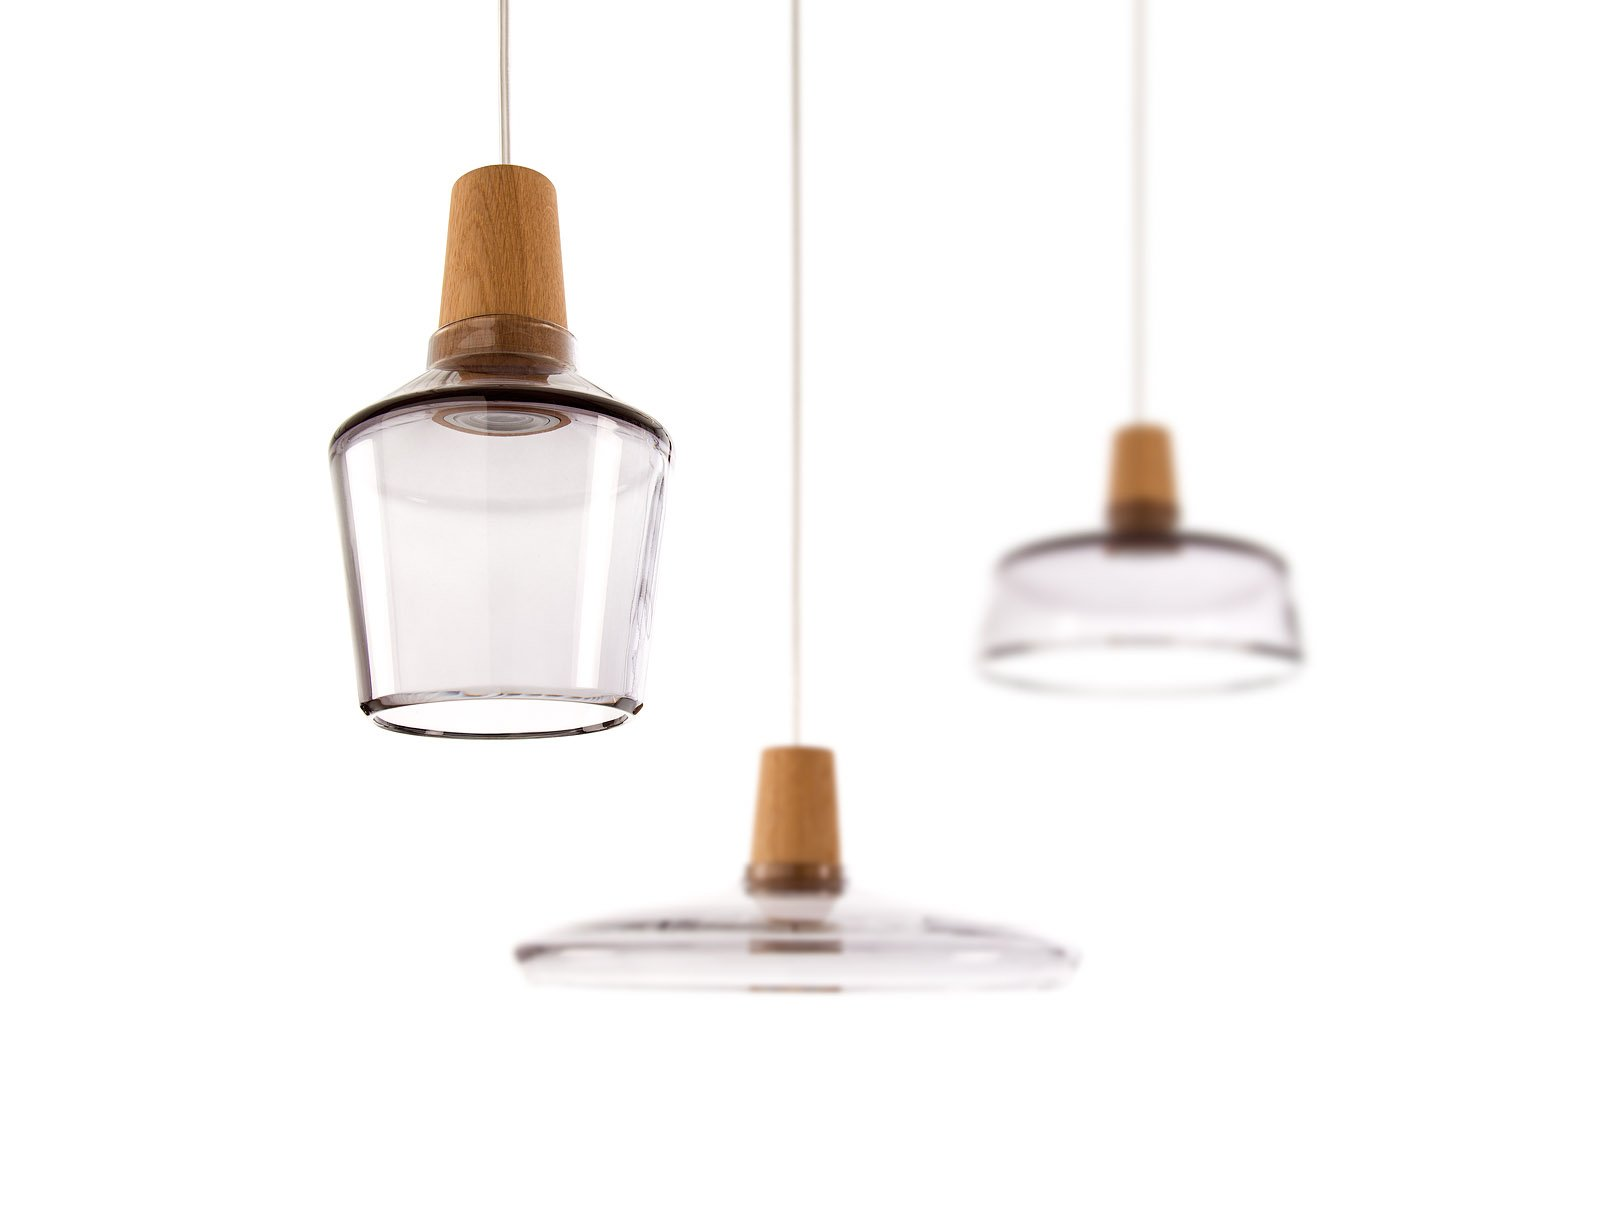 Made from hand-blown glass and wood, the Industrial Pendant Lamp from Kaschkasch Cologne for DWR, can hang alone or as a trio.  Checking In On WantedDesign 2013 by Sara Carpenter